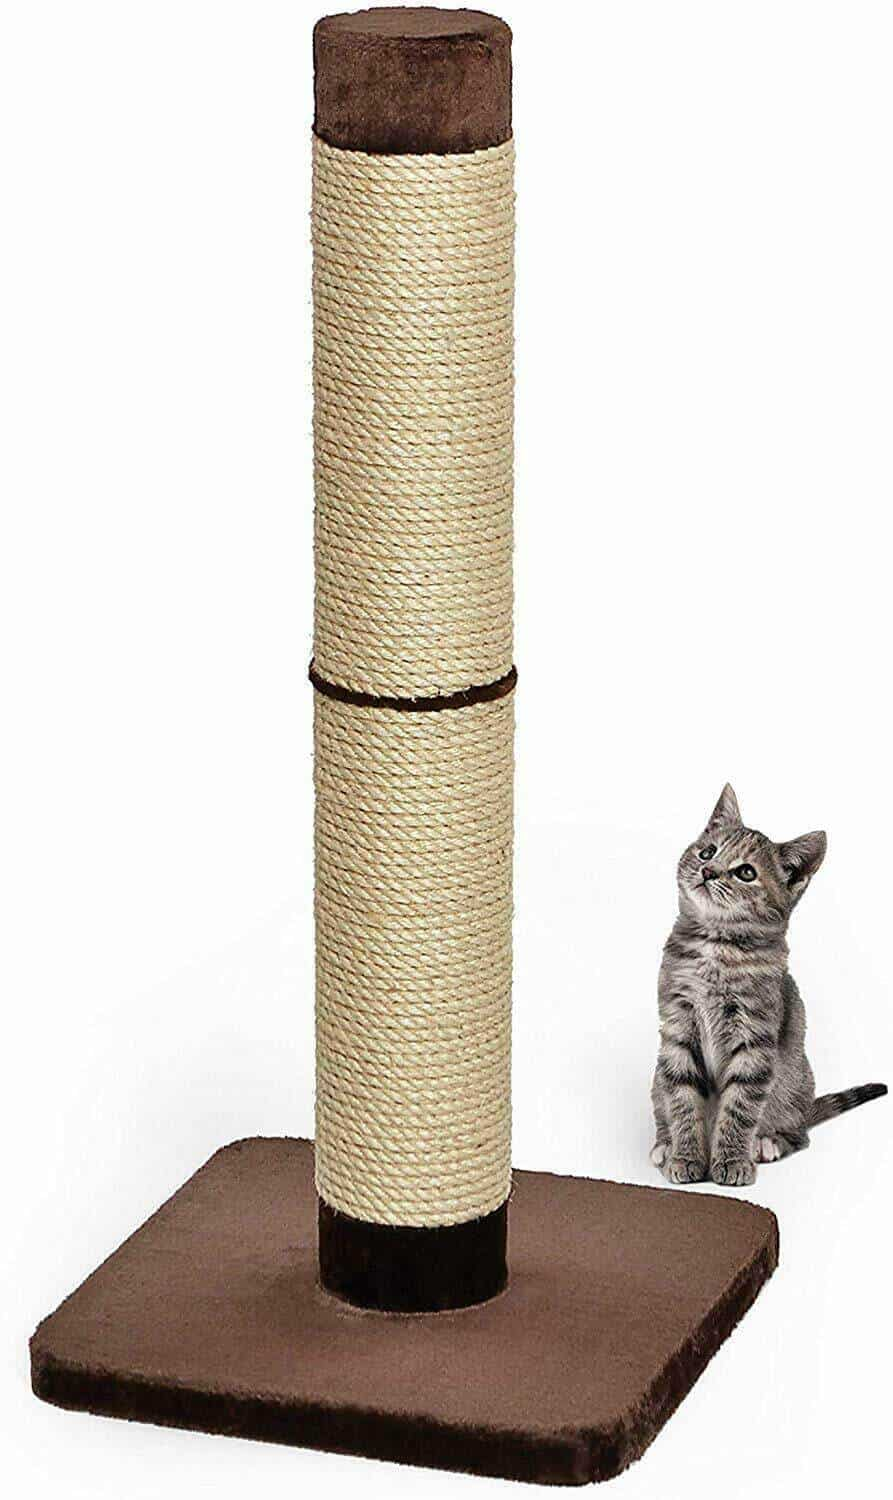 MidWest Cat Furniture | Durable, Stylish Cat Trees & Cat Scratching Posts